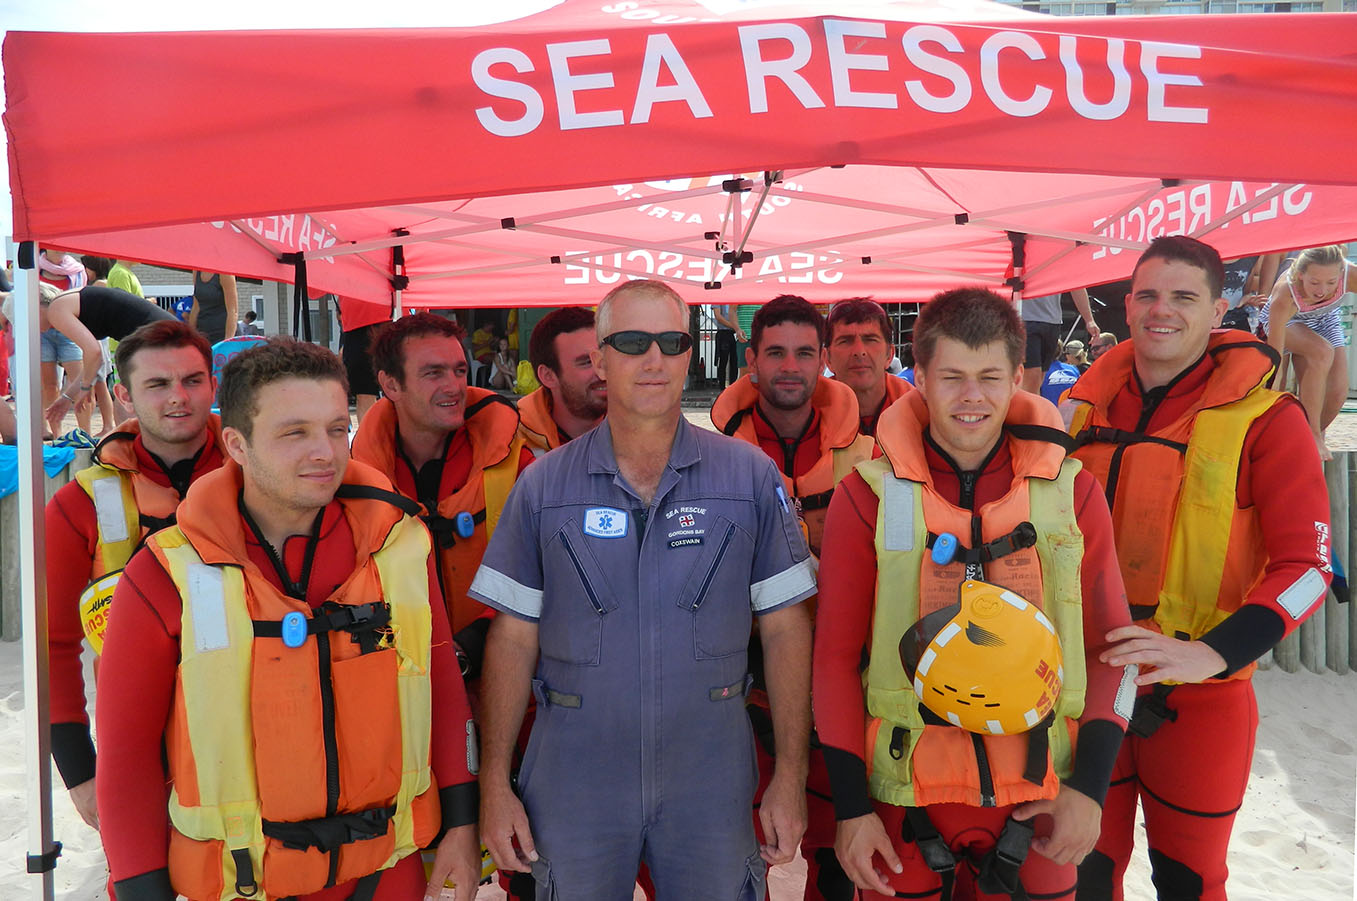 The NSRI team who helped during the day.